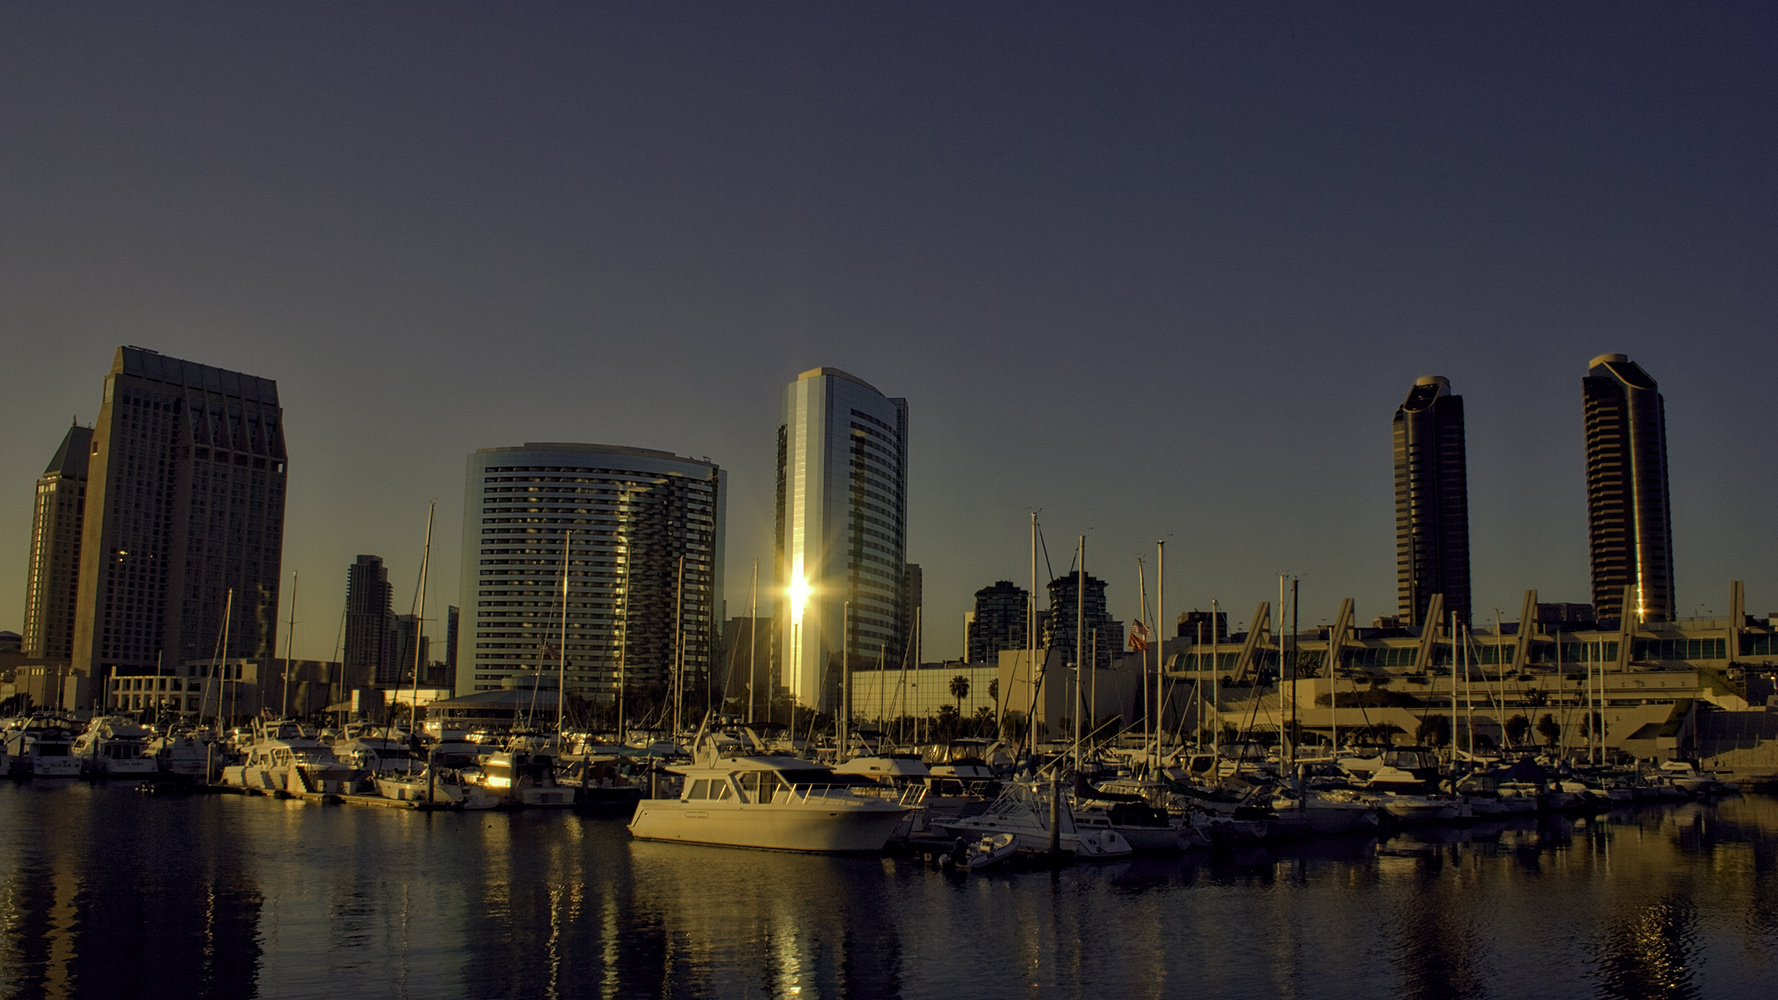 Location and Date: San Diego, California, USA; 11 April 2008  Tech Specs: 1/800s @ f/10.0 18mm @ ISO 200  Camera & Lens: Canon D350; Canon 18-55mm Stock Lens